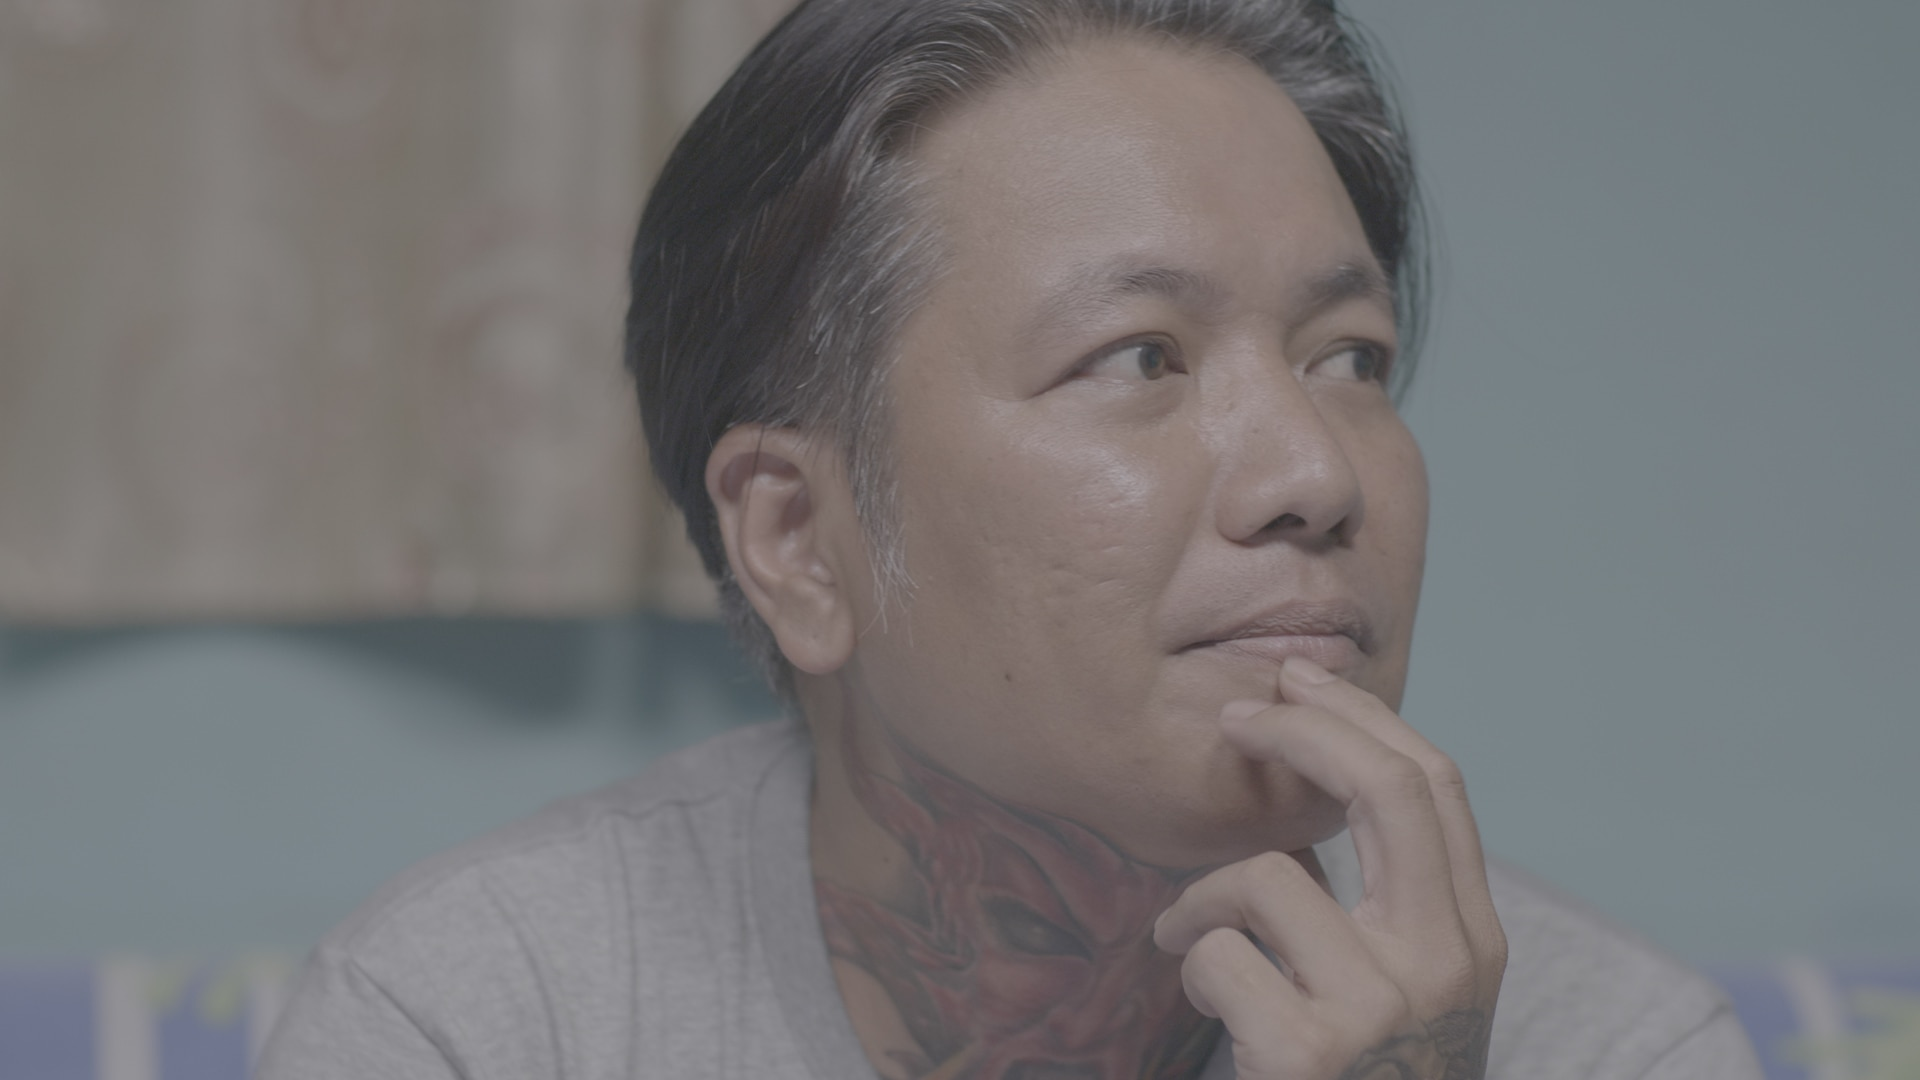 The documentary features stories of recovery and redemption of people who suffered mental illness or had loved ones who had mental health issues